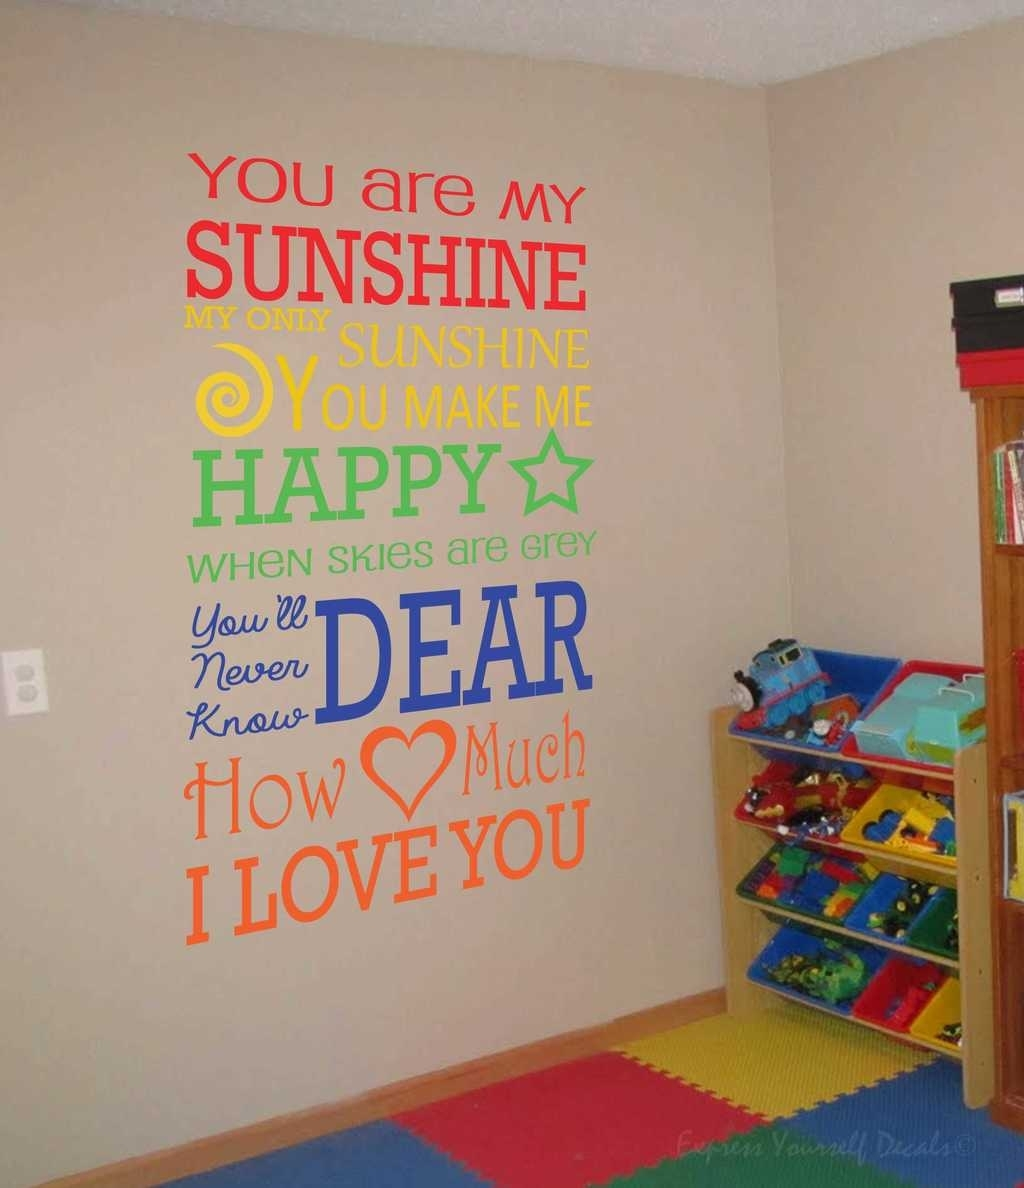 Express Love With Our Love Based Wall Decals Regarding You Are My Sunshine Wall Art (Photo 12 of 25)